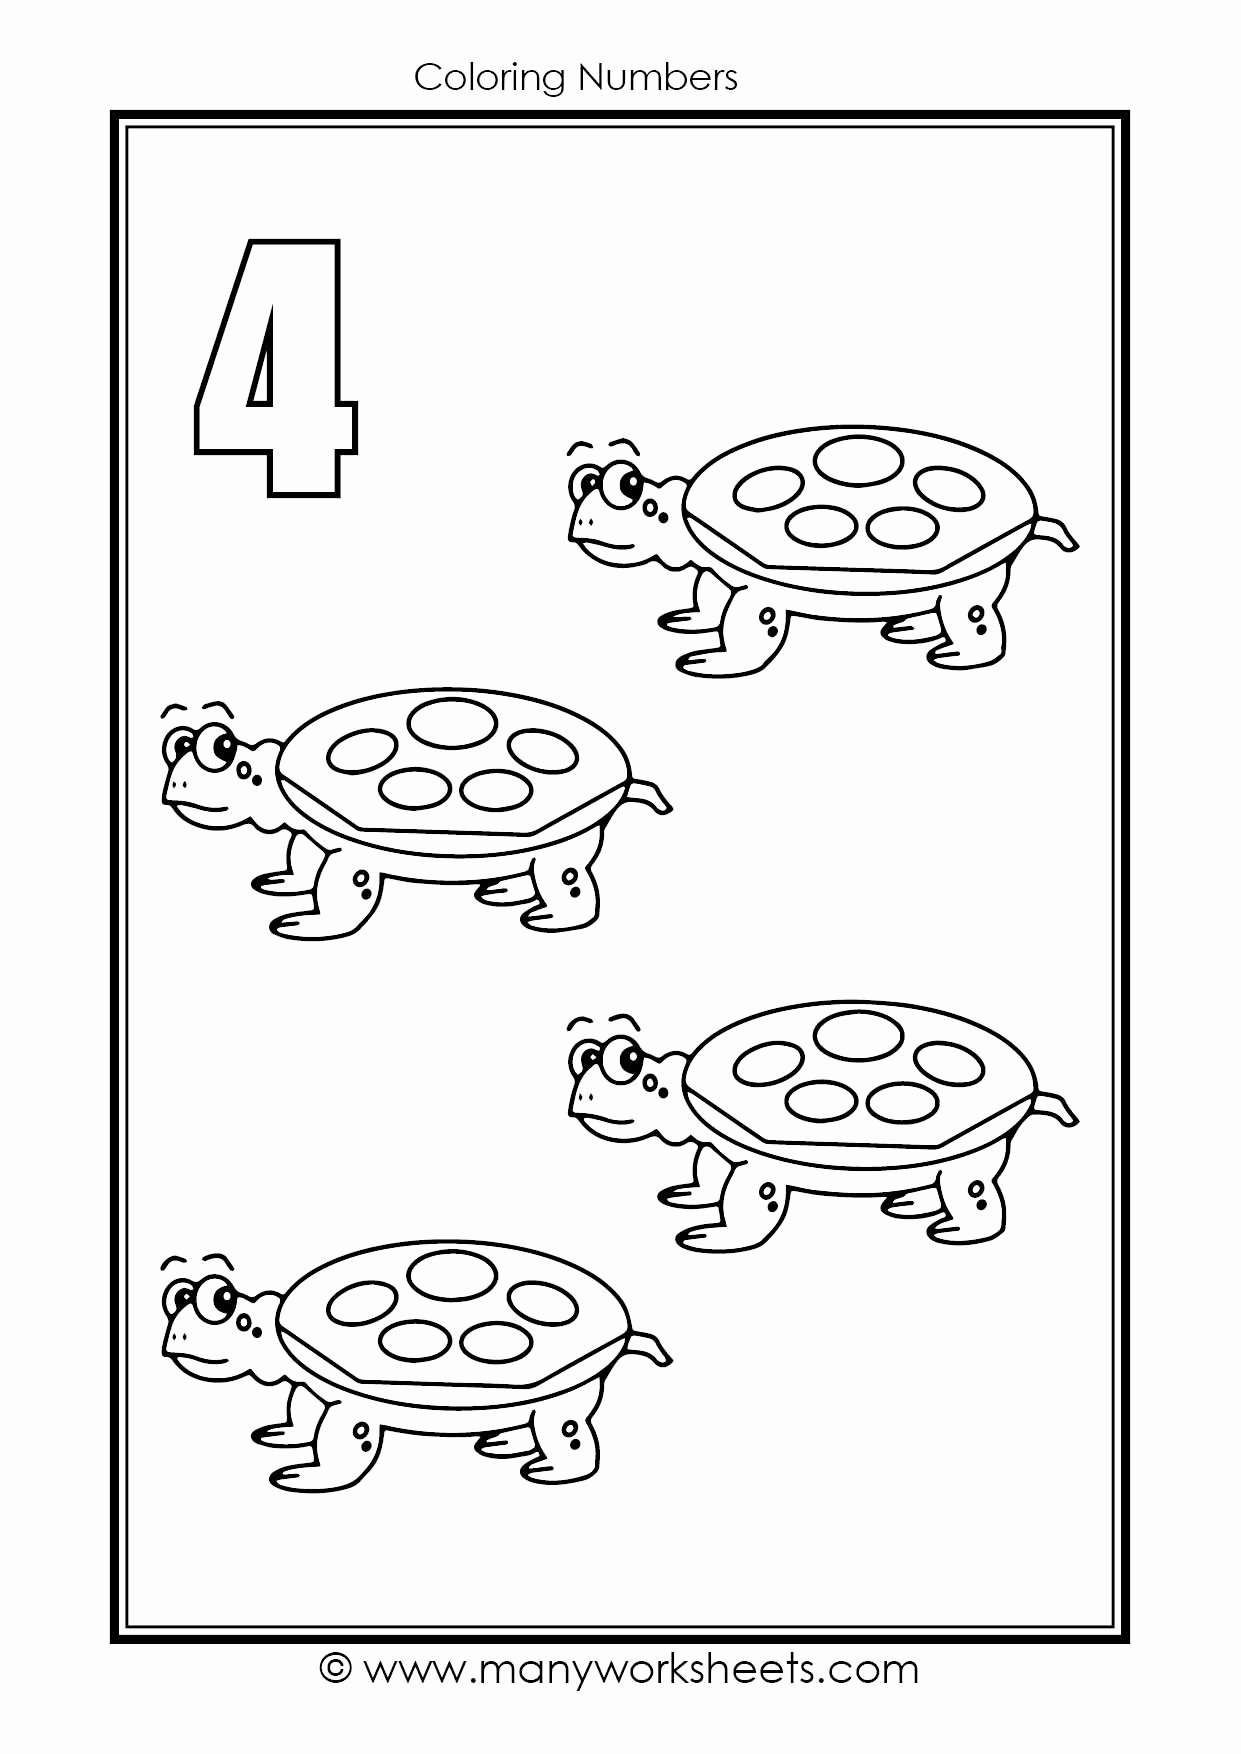 Number Worksheets for Preschoolers Awesome Worksheets Number Coloring Fish theme Numbers Worksheets